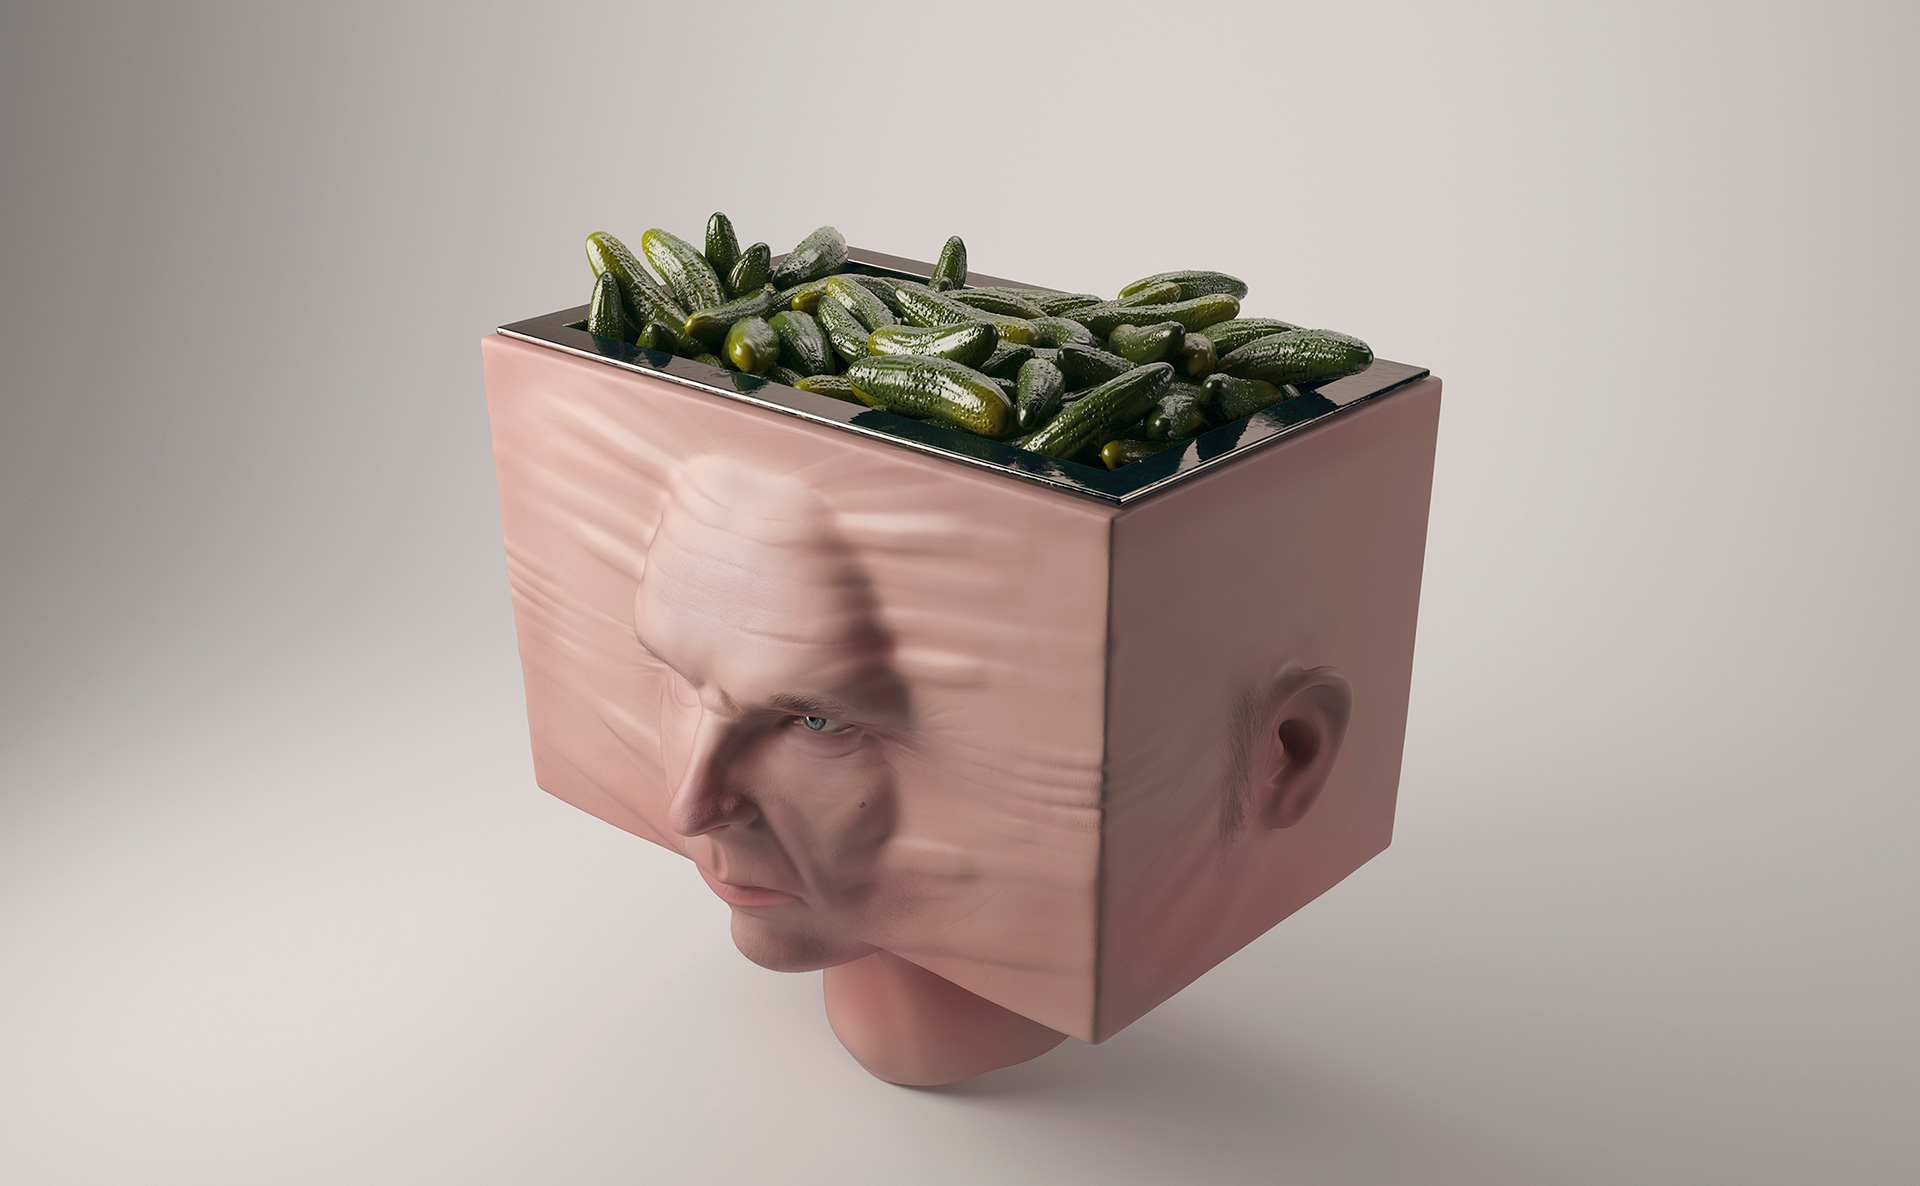 5_Pickle_heads_ok_diseno_cgi_jorge_gago